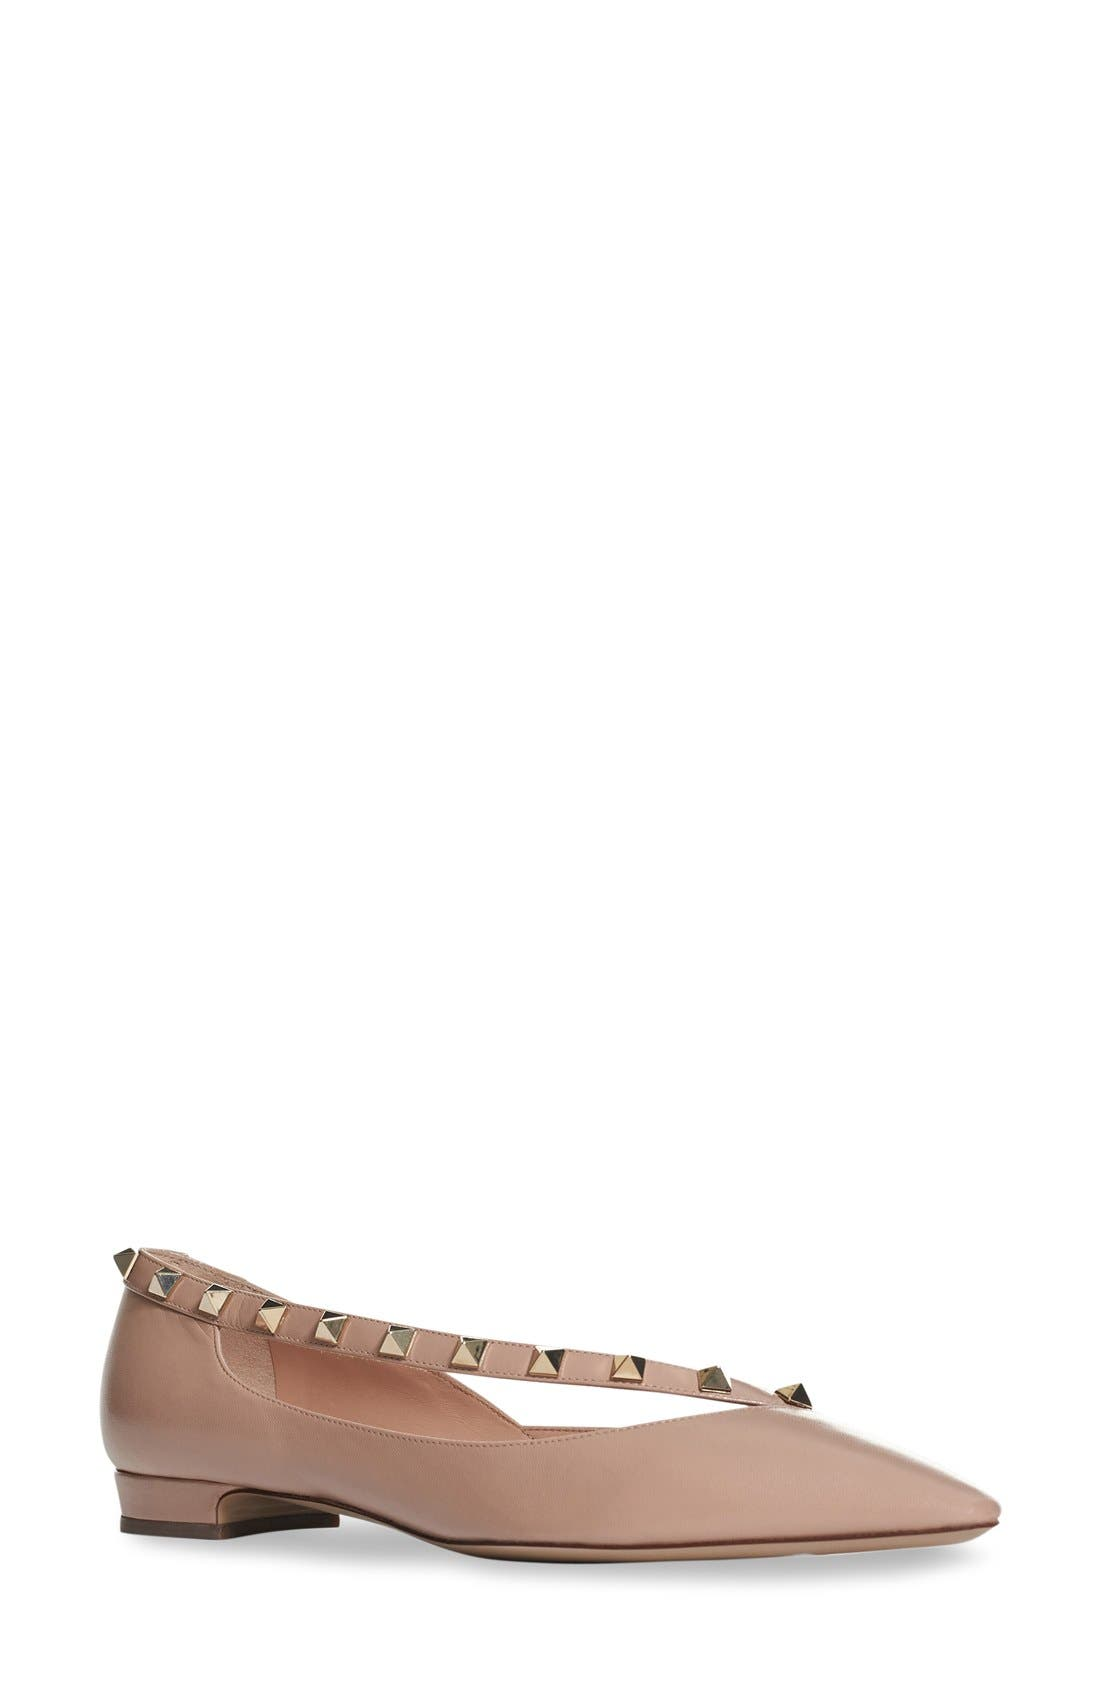 'Rockstud' Demi d'Orsay Flat,                         Main,                         color, 250